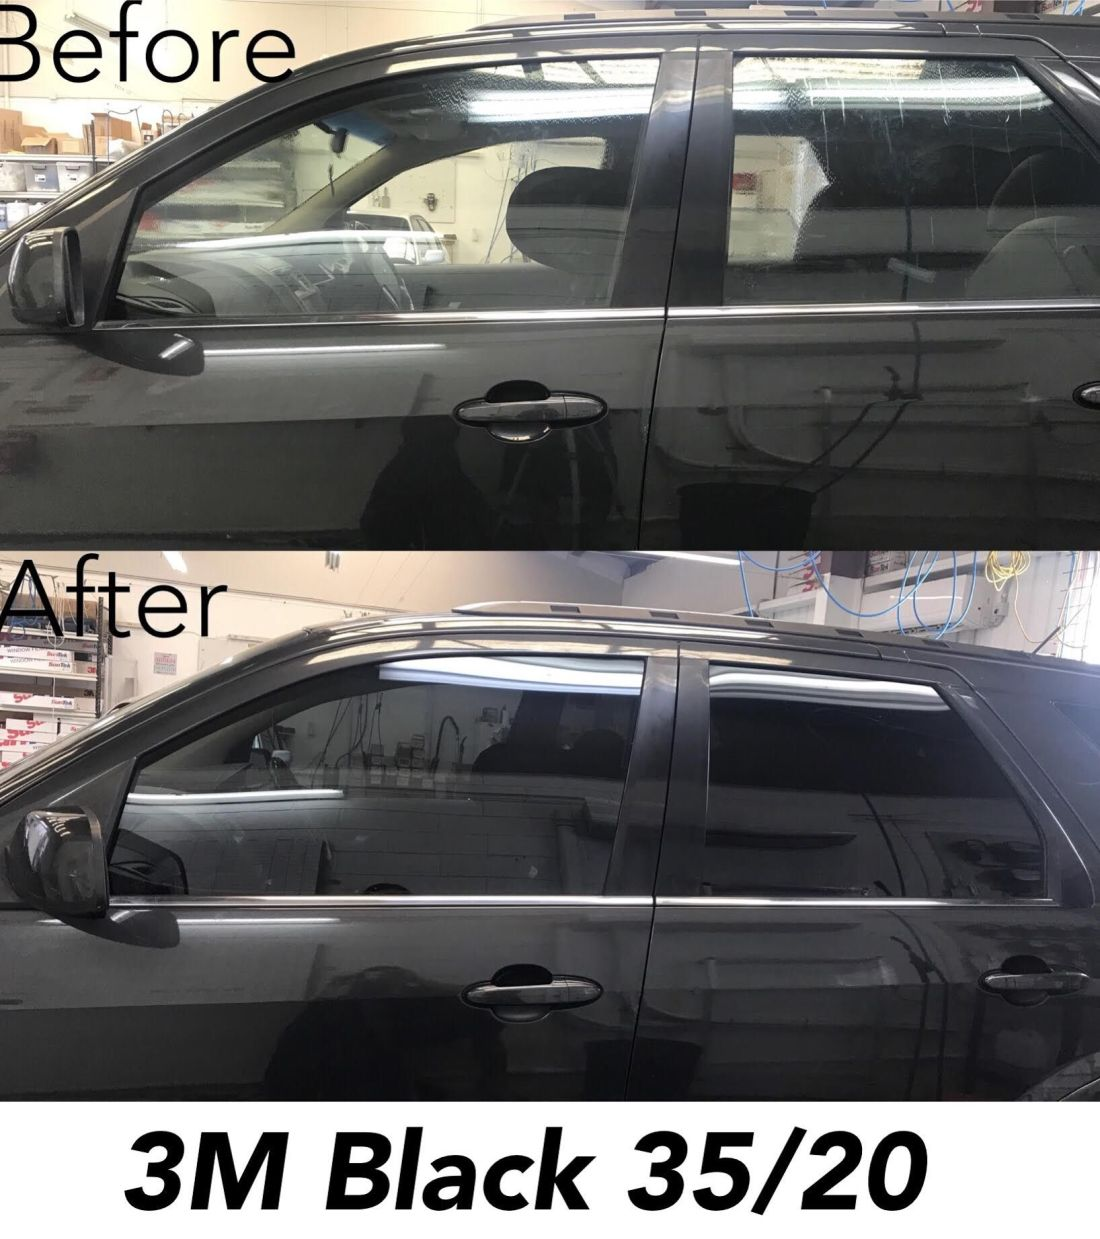 how much does it cost to tint car windows uk